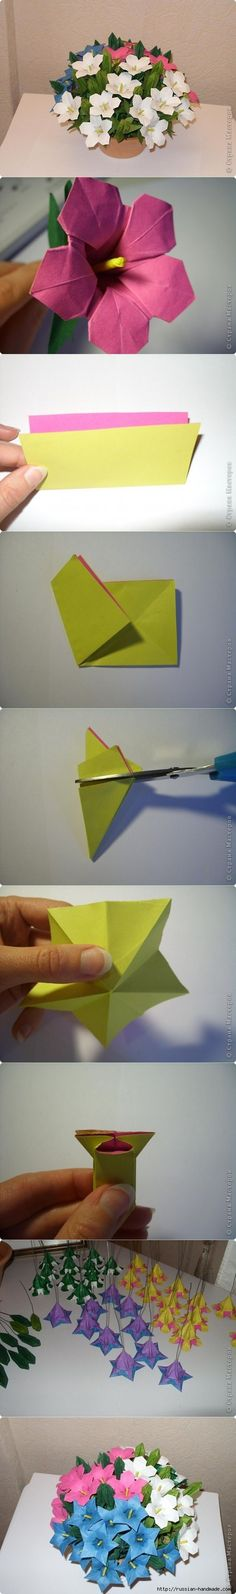 DIY Beautiful Paper Origami Lily Flower Bouquet - Diy Home Crafts Origami And Kirigami, Origami Paper Art, Diy Paper, Flower Bouquet Diy, Diy Flowers, Paper Flowers, Origami Bouquet, Lily Bouquet, Paper Bouquet